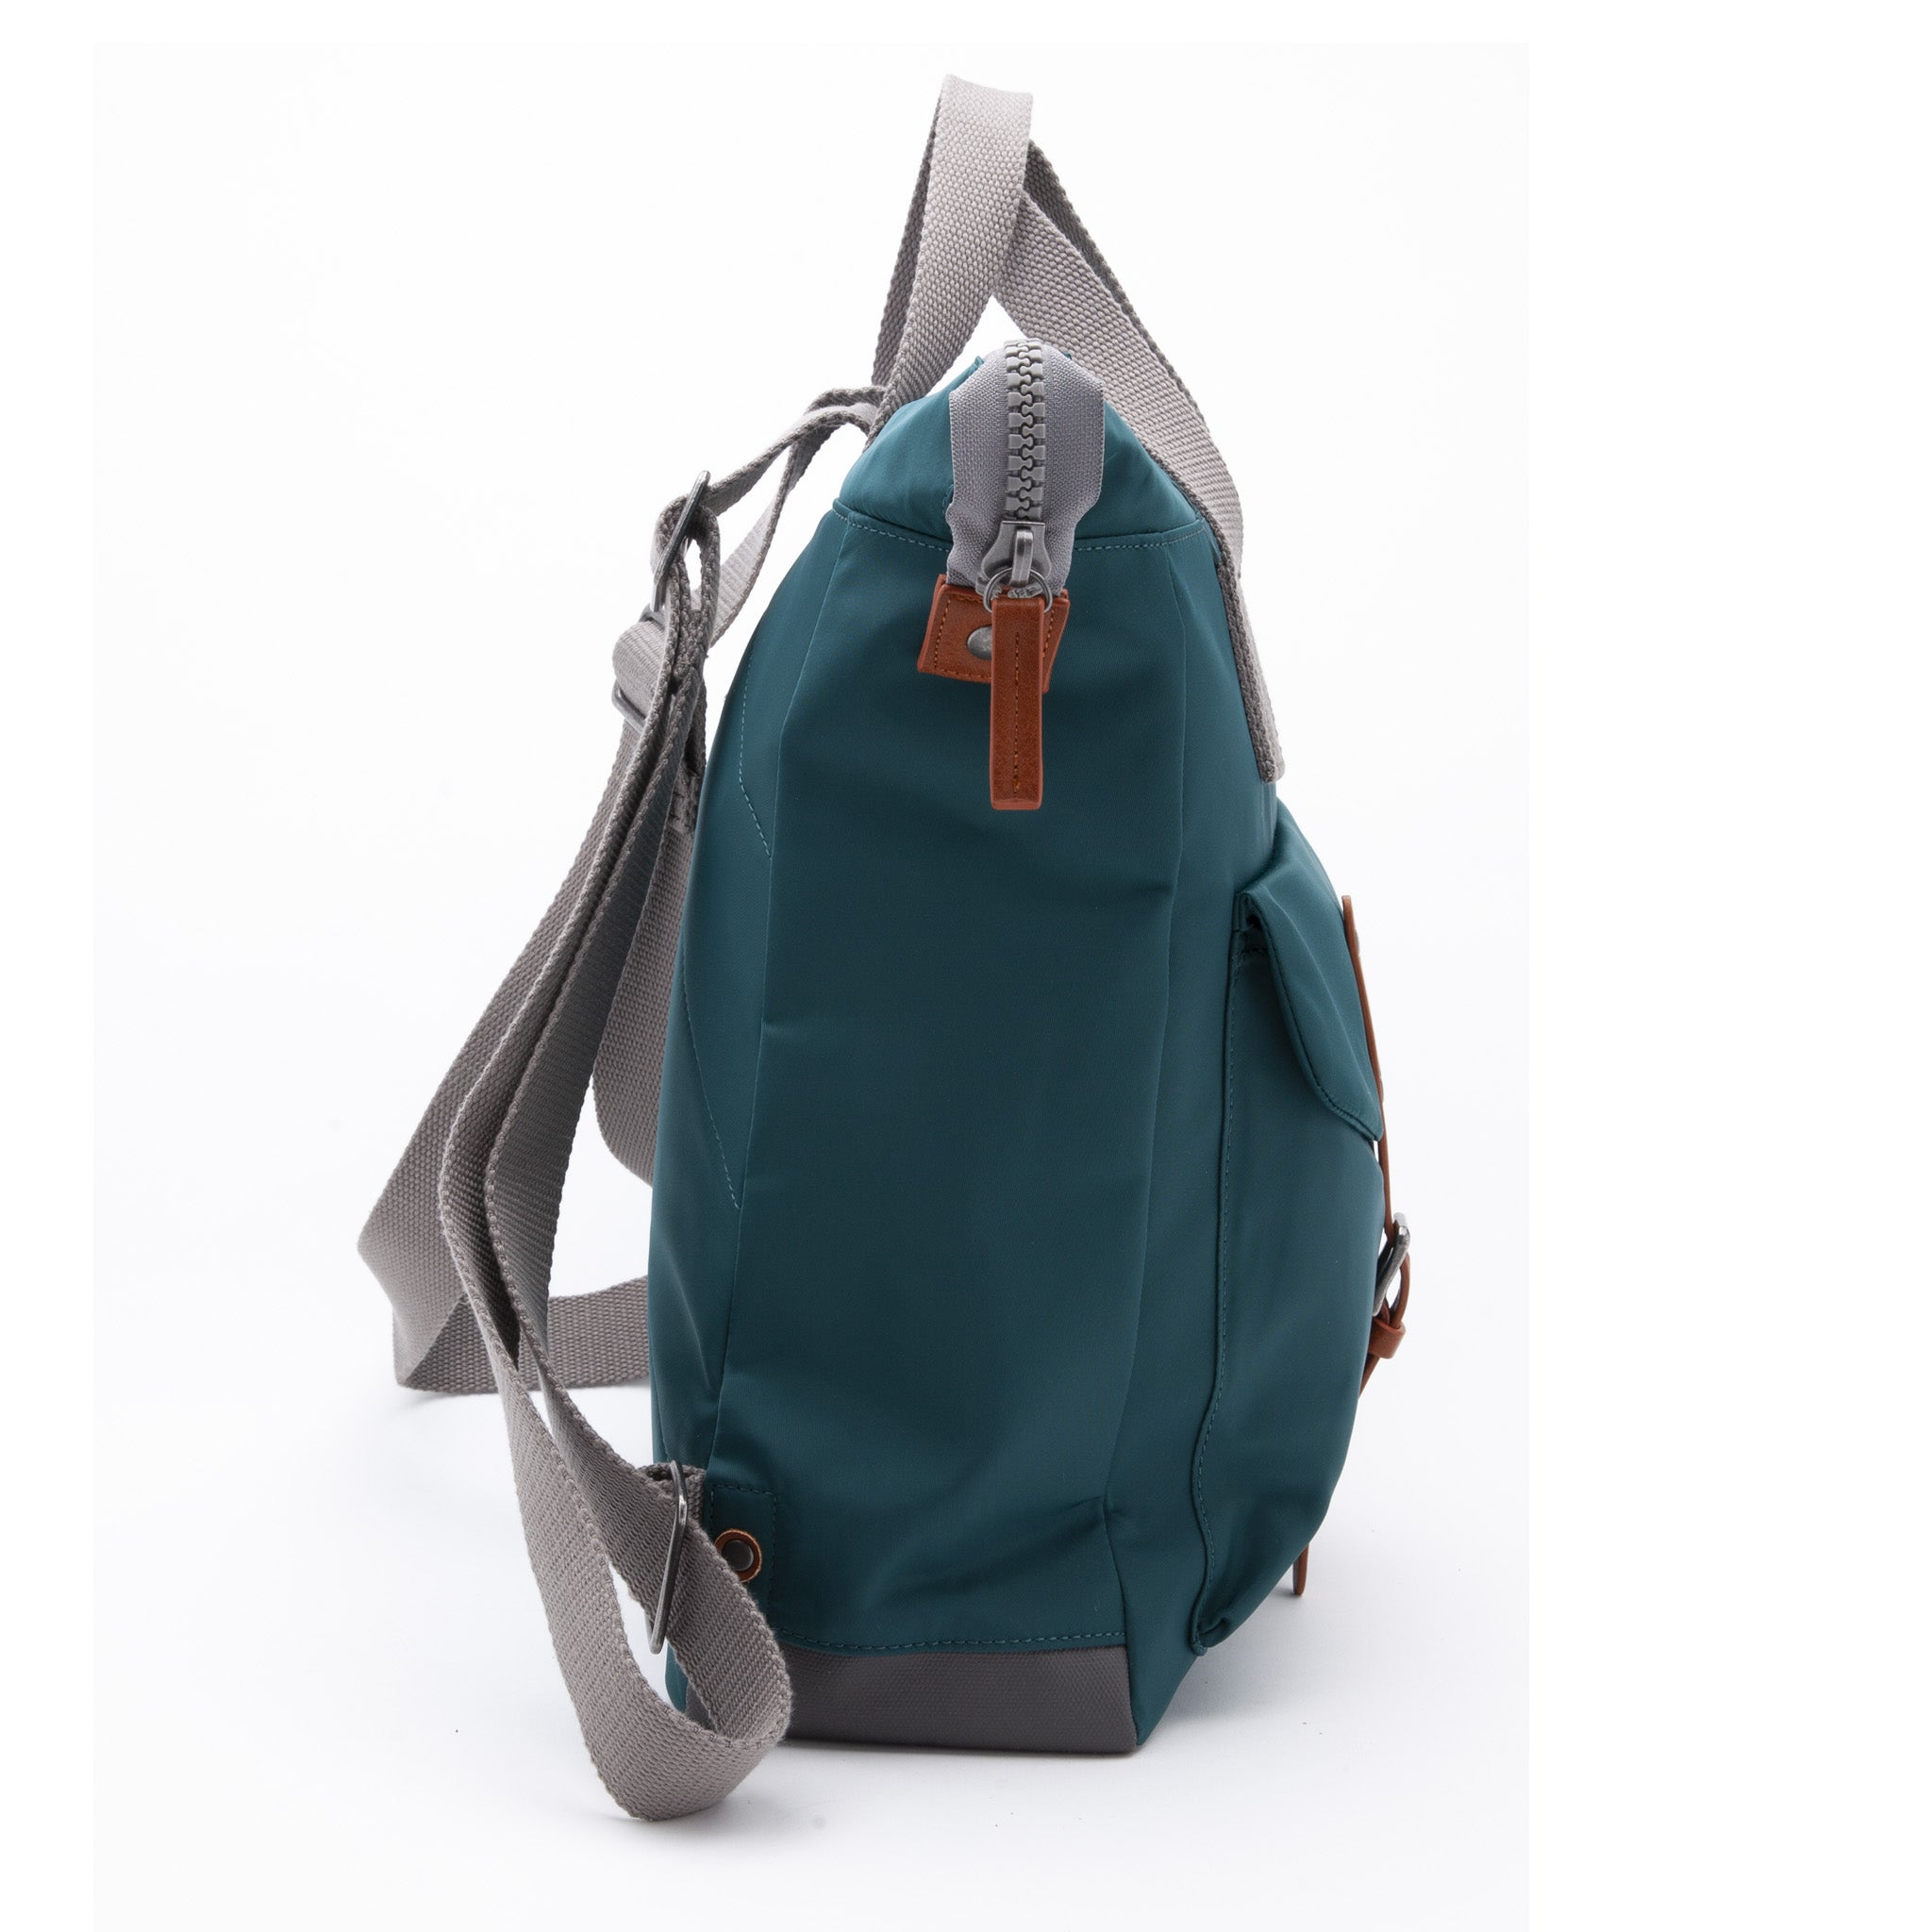 Ori Backpacks and Bags | Bantry C with front clasp | Color - Teal